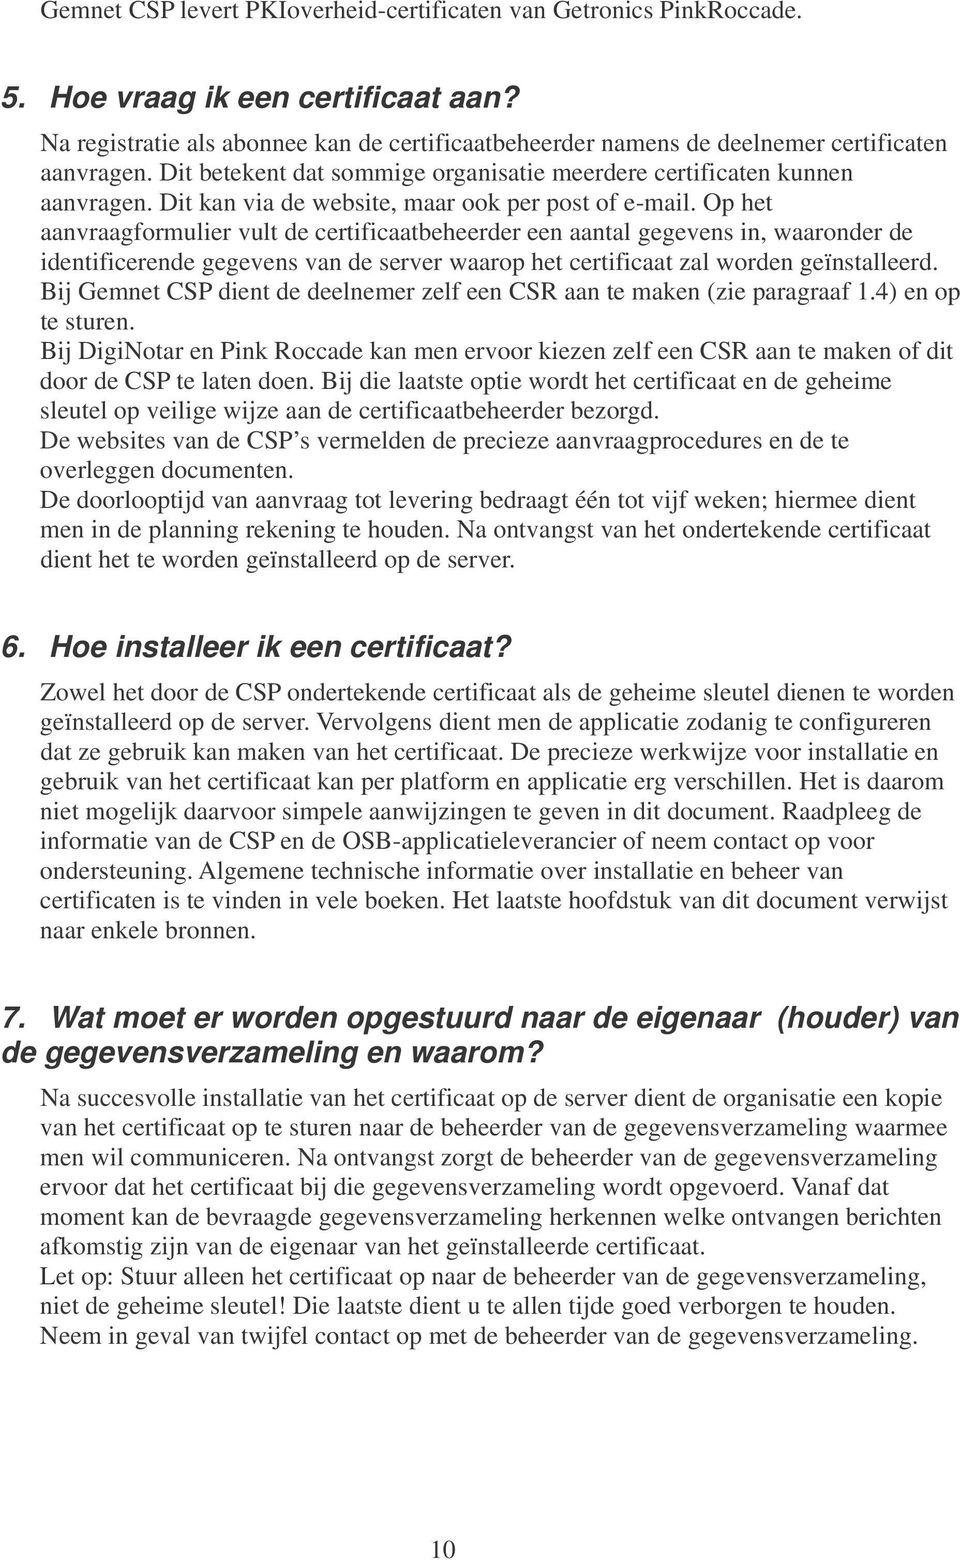 Dit kan via de website, maar ook per post of e-mail.